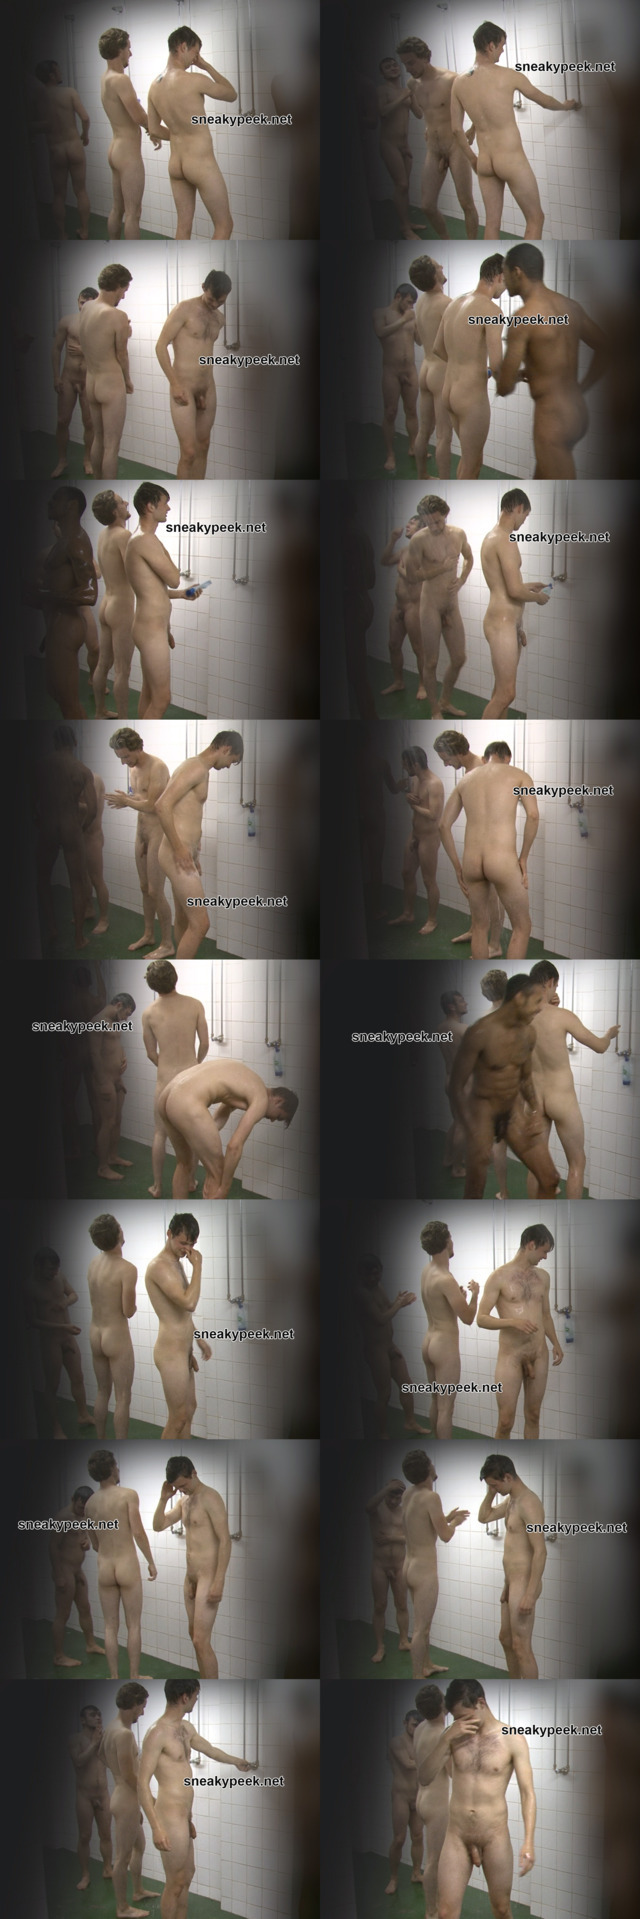 hot footballers caught showering together in communal shower